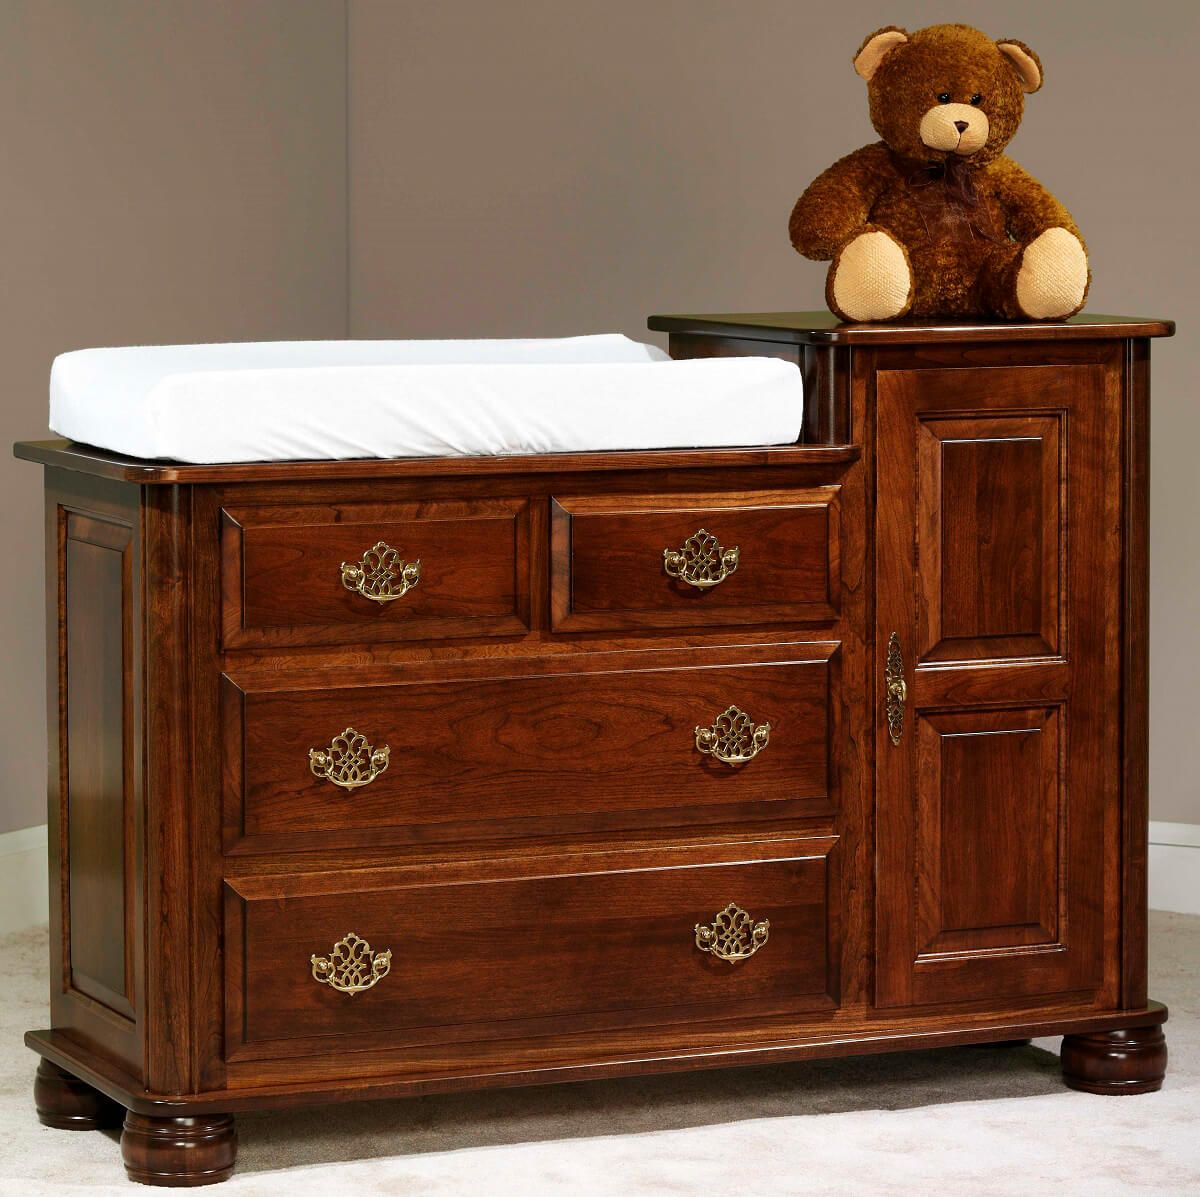 Prestige Changing Table, contour pad not included